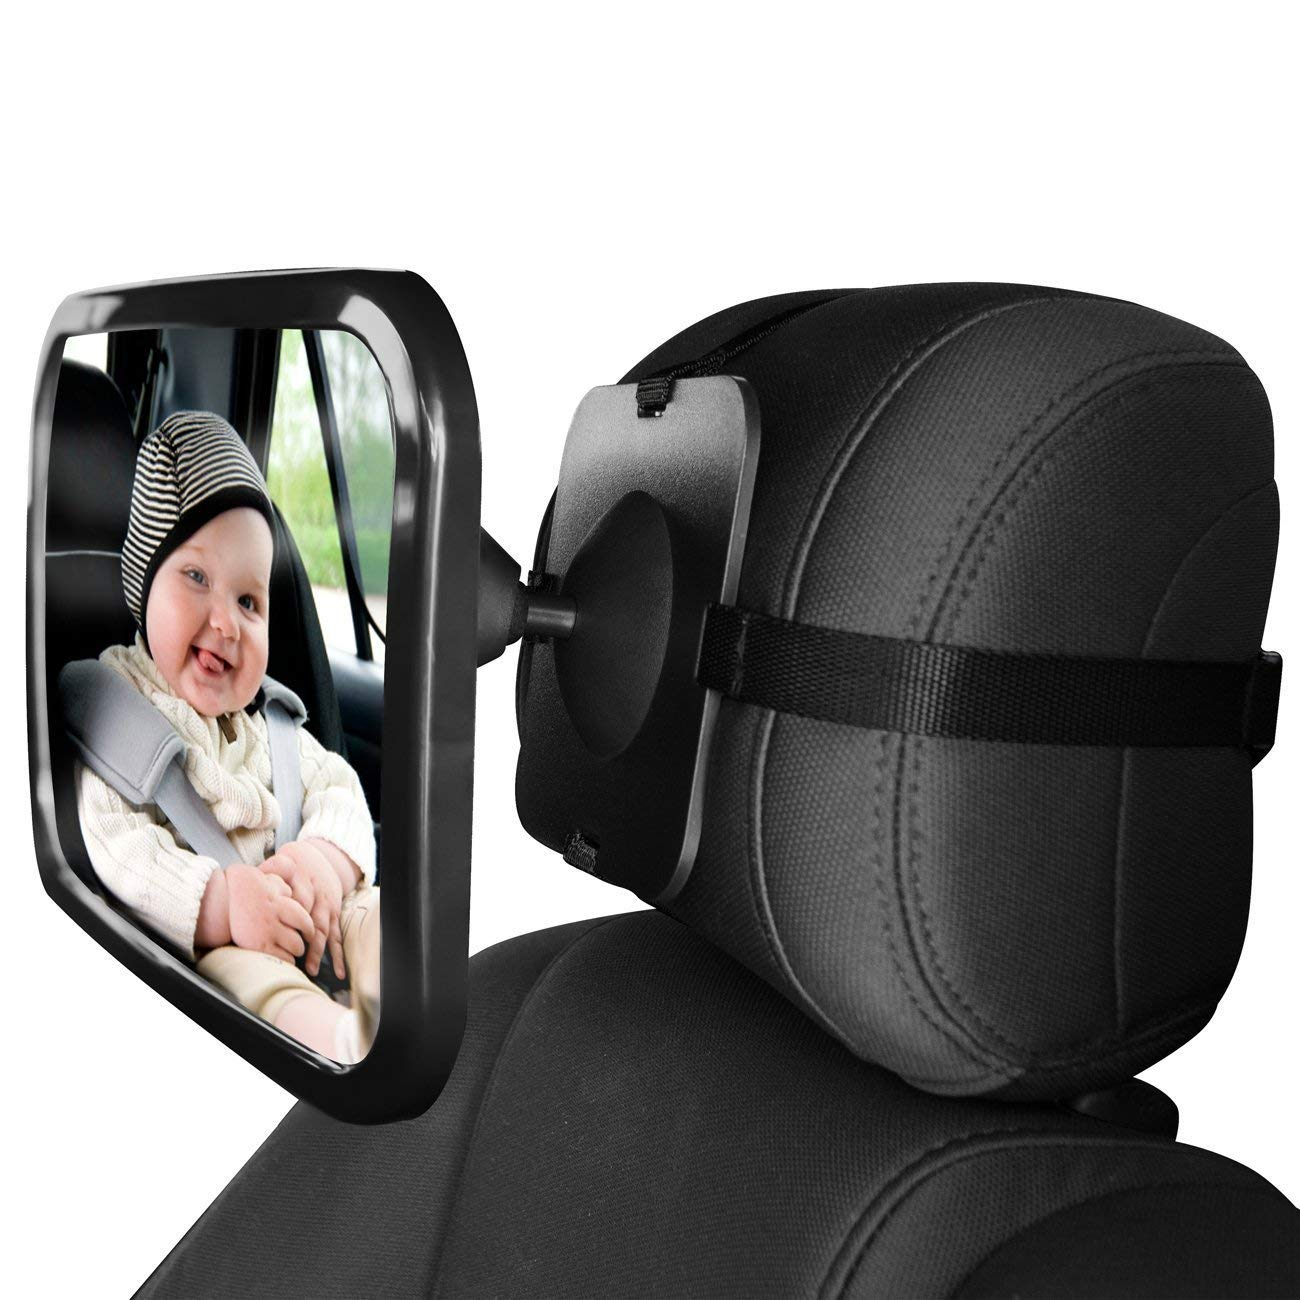 VViViD Headrest Mounted Rear View Adjustable Backseat Baby Safety Mirror by VViViD